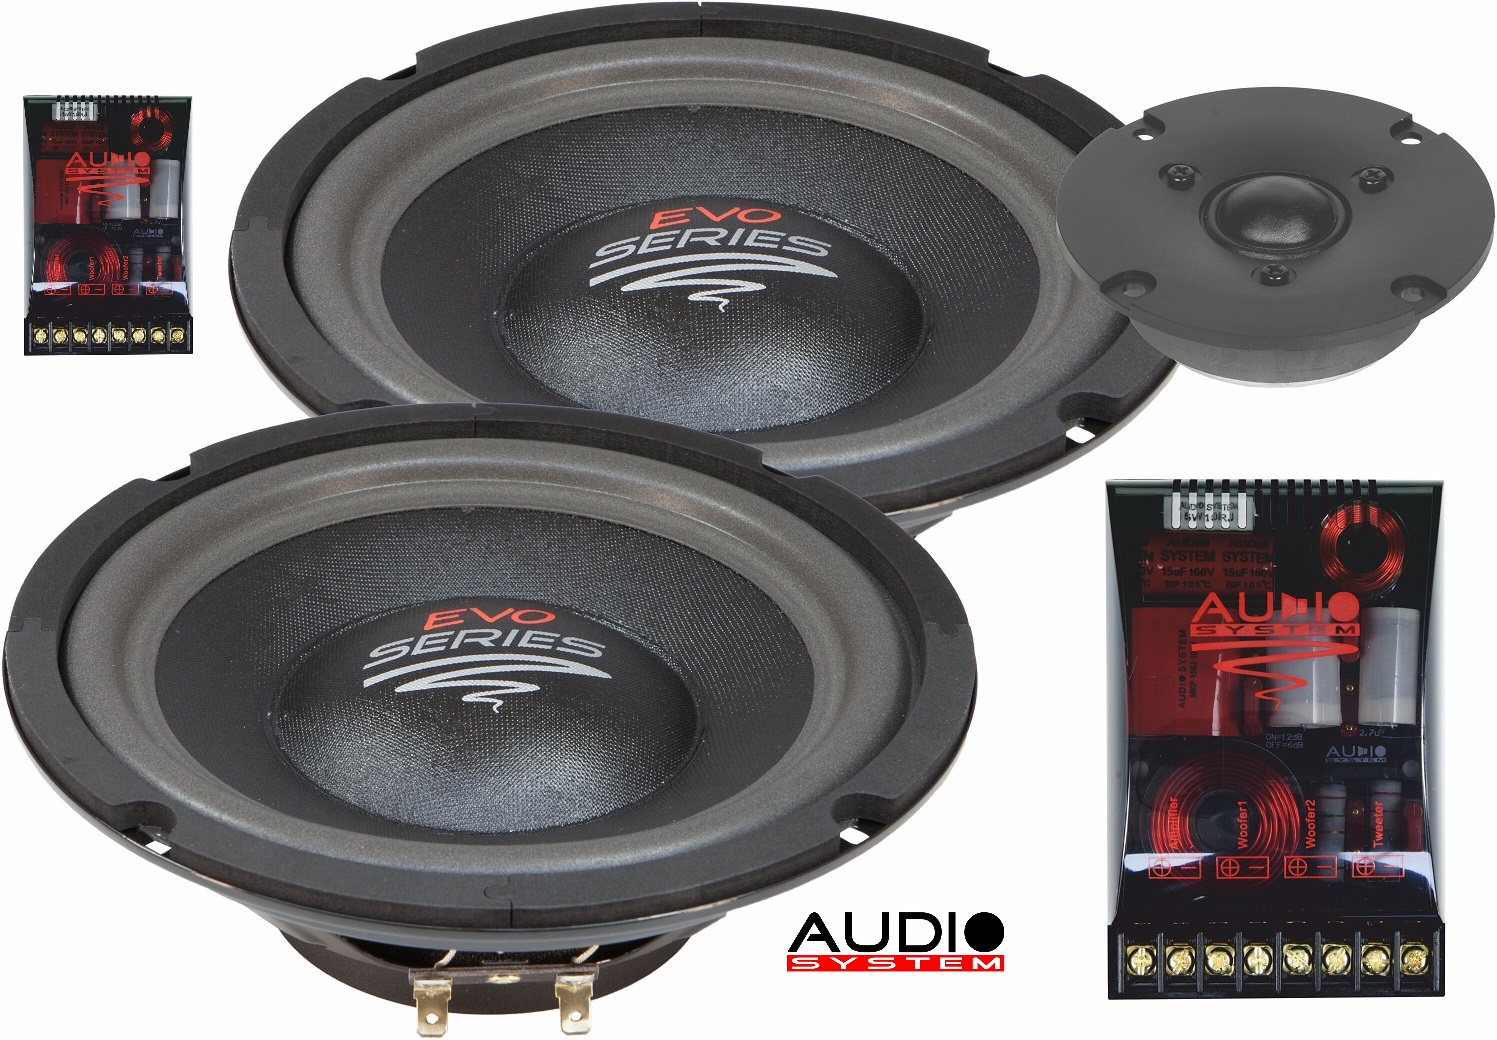 Audio System R 2/20 FLAT 2-way 20cm Composystem for rear area